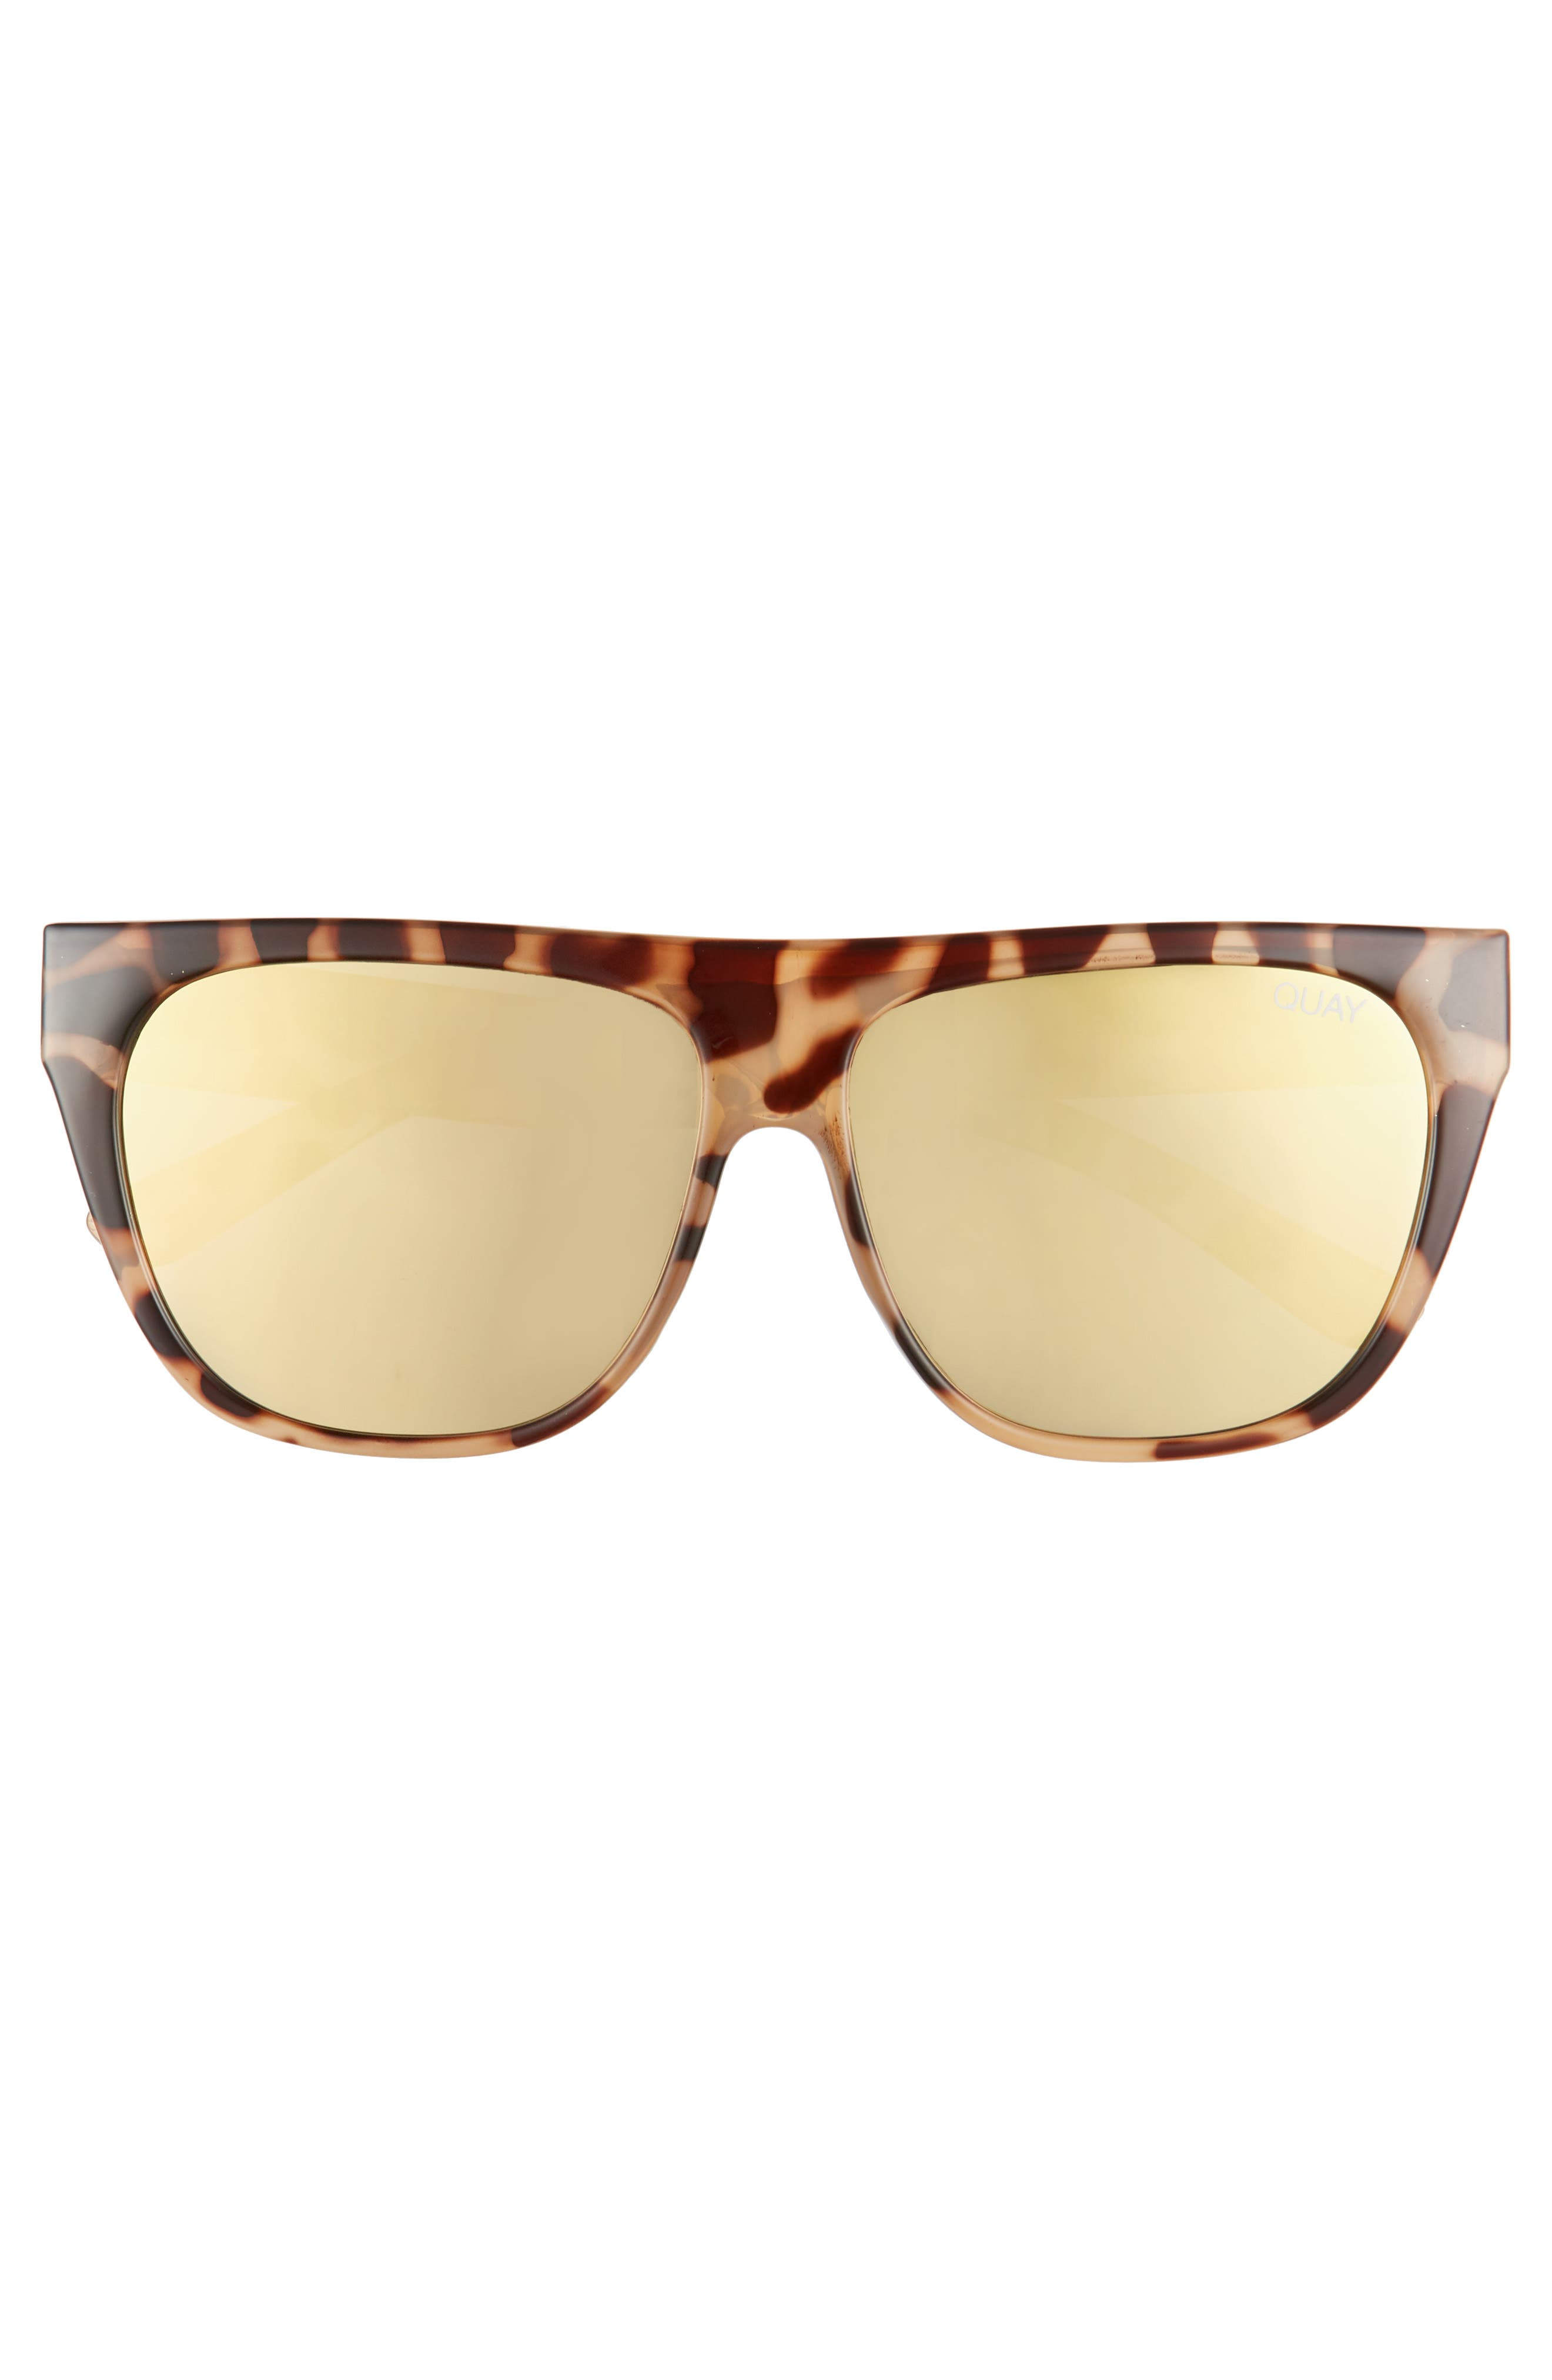 Drama by Day 55mm Square Sunglasses,                             Alternate thumbnail 3, color,                             TORT/ GOLD